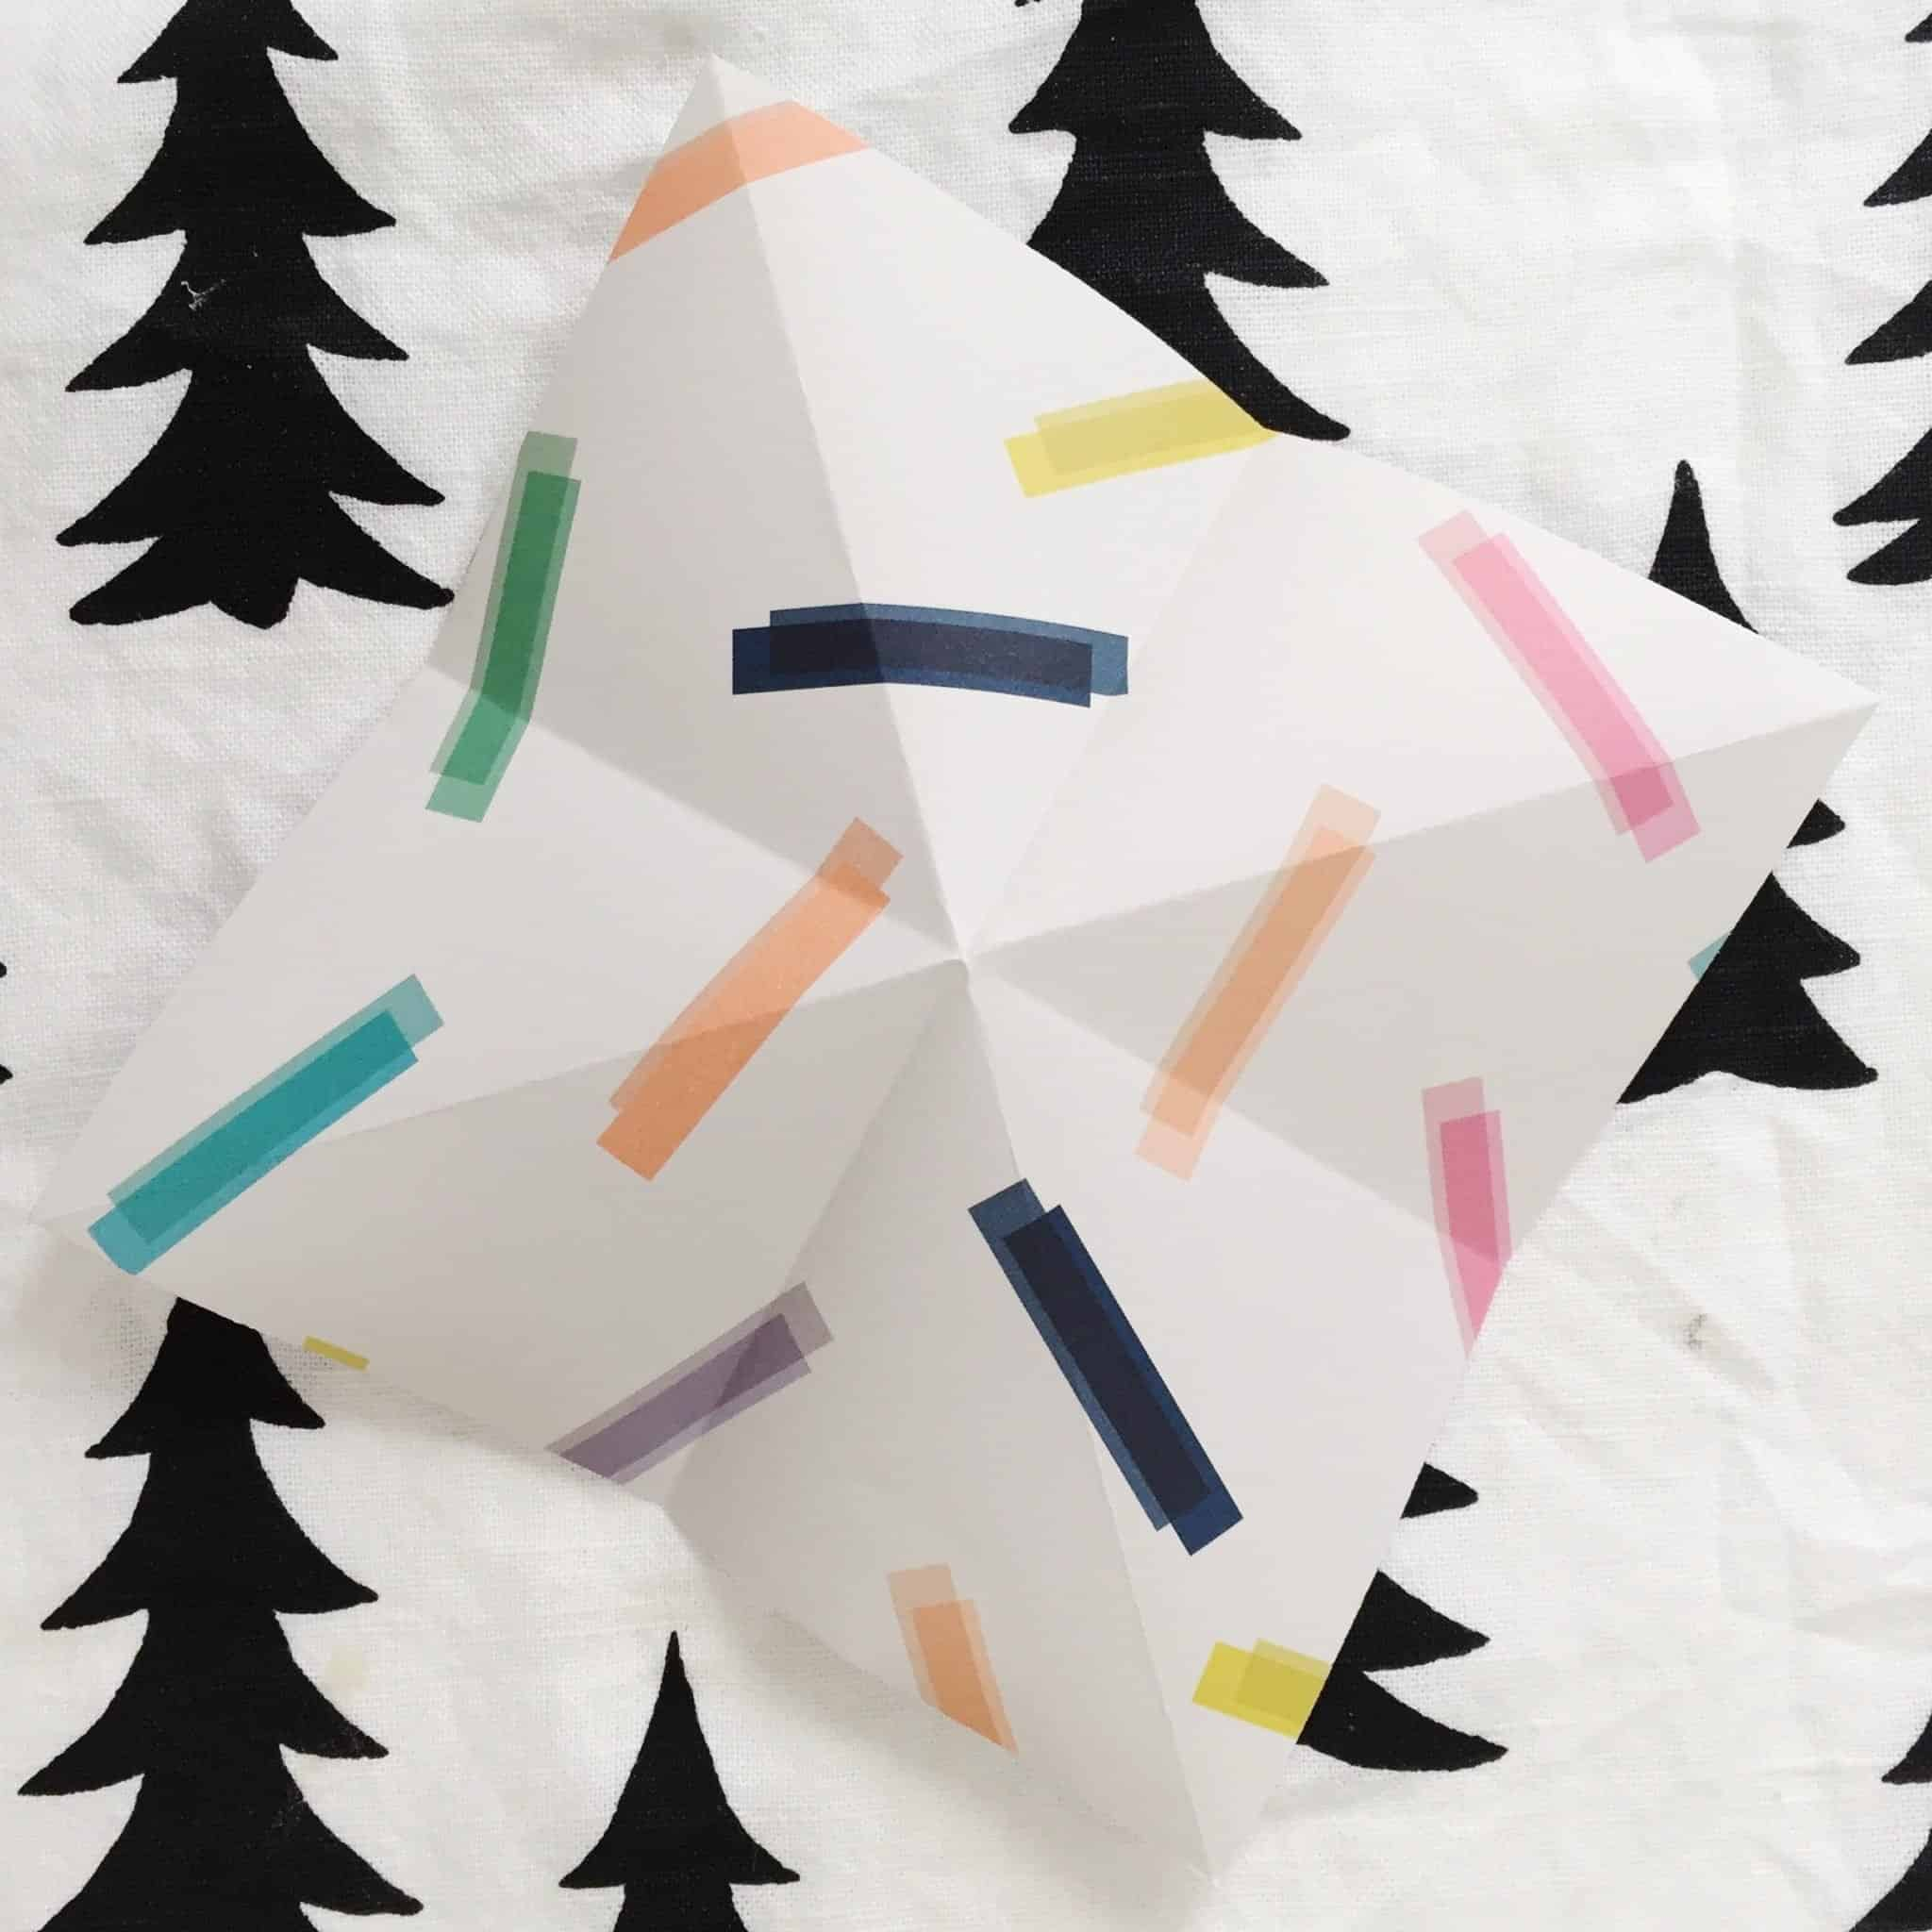 Learning origami: first folds